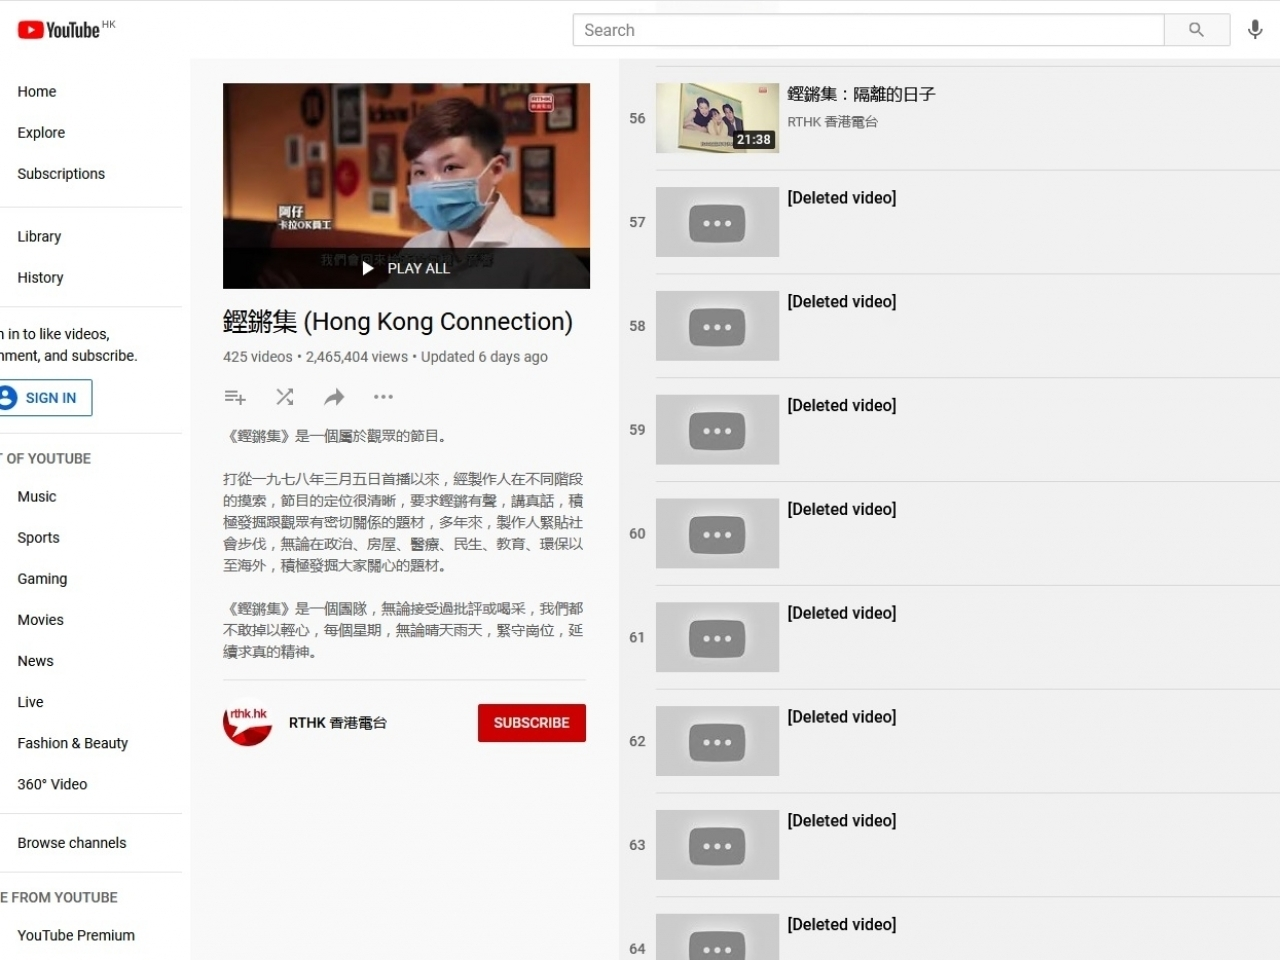 The union says teachers are encountering difficulty in preparing lessons now that some RTHK shows have been deleted from the internet.